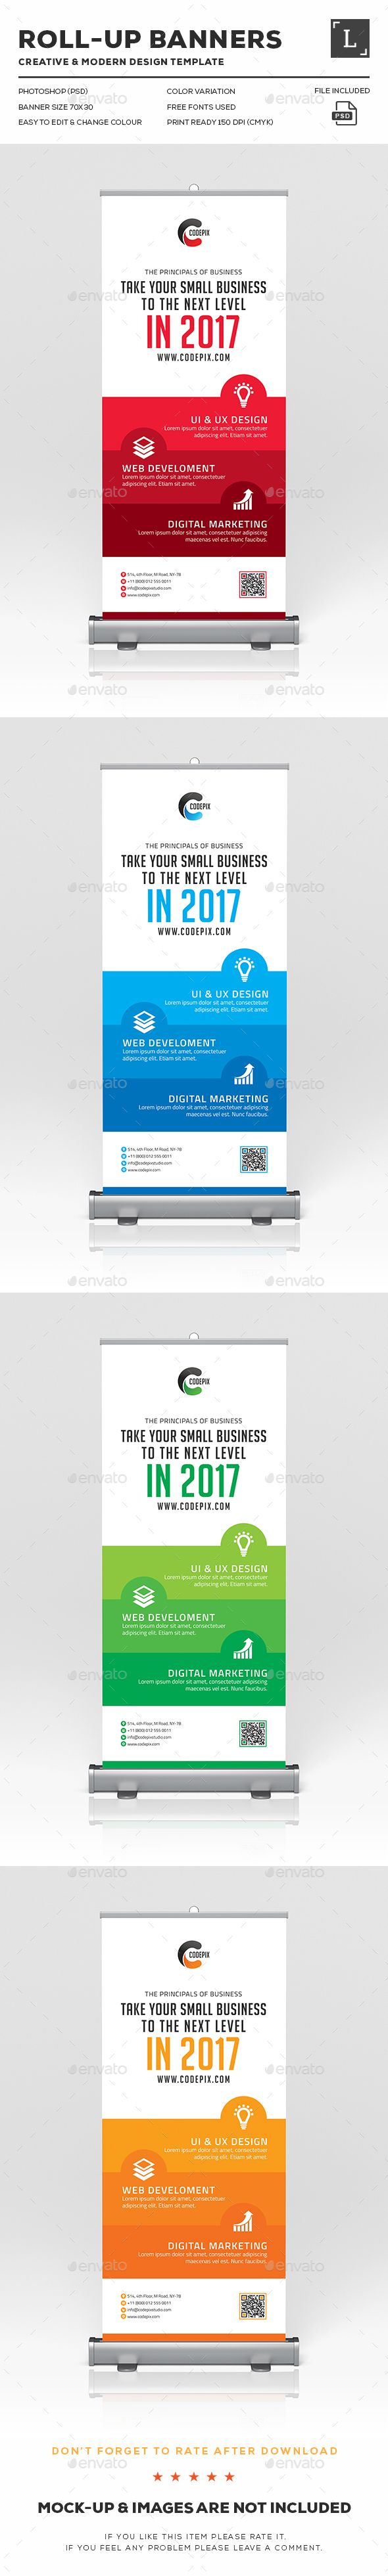 Roll-Up Banner Template PSD. Download here: http://graphicriver.net/item/rollup-banner/16616302?ref=ksioks